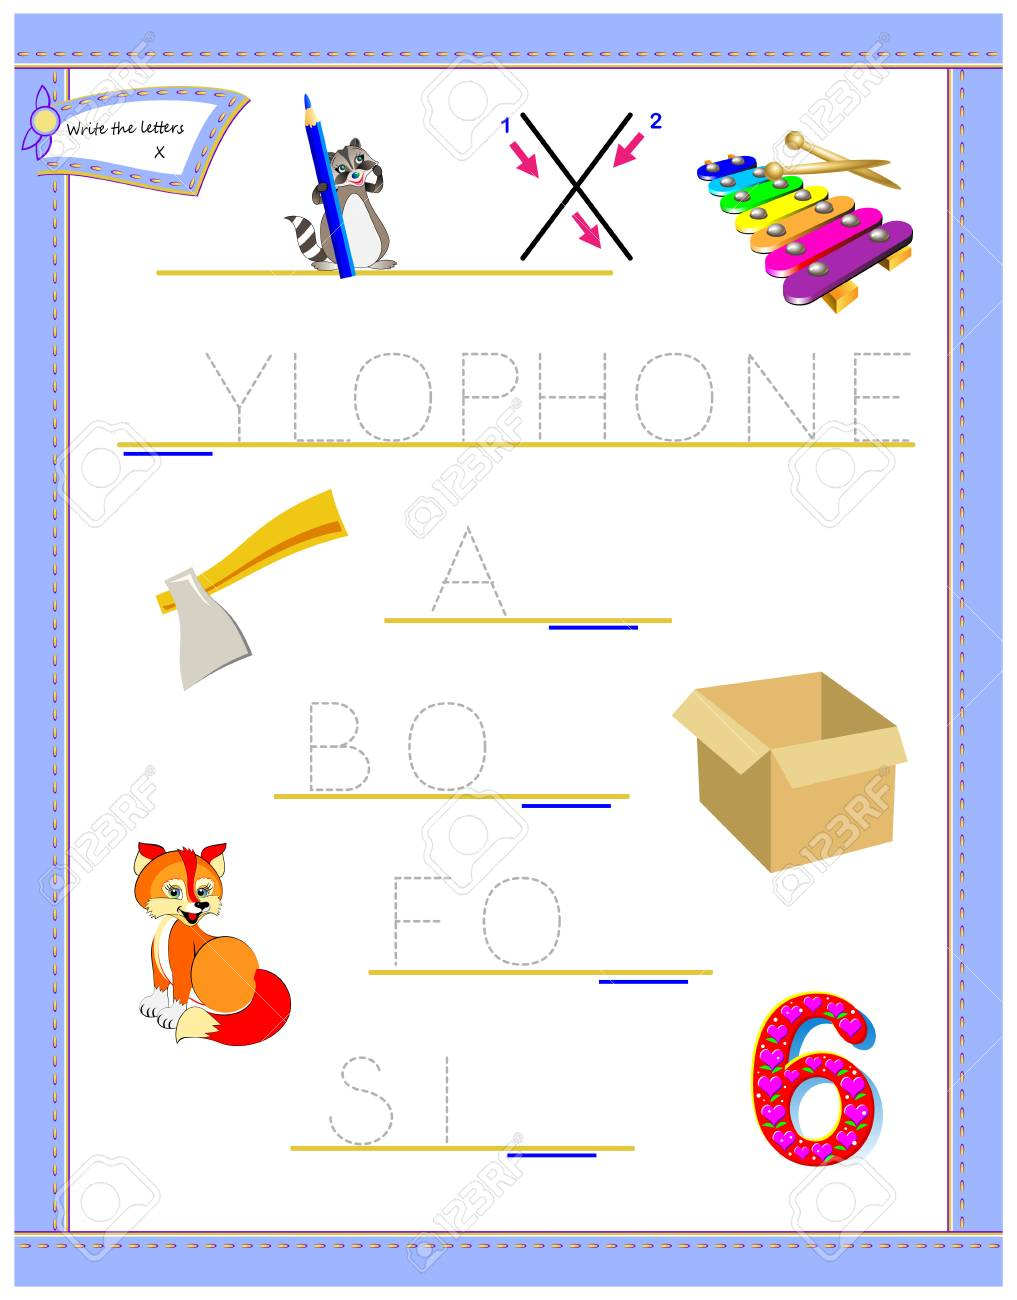 image relating to Letter X Printable named Tracing letter X for research English alphabet. Printable worksheet..